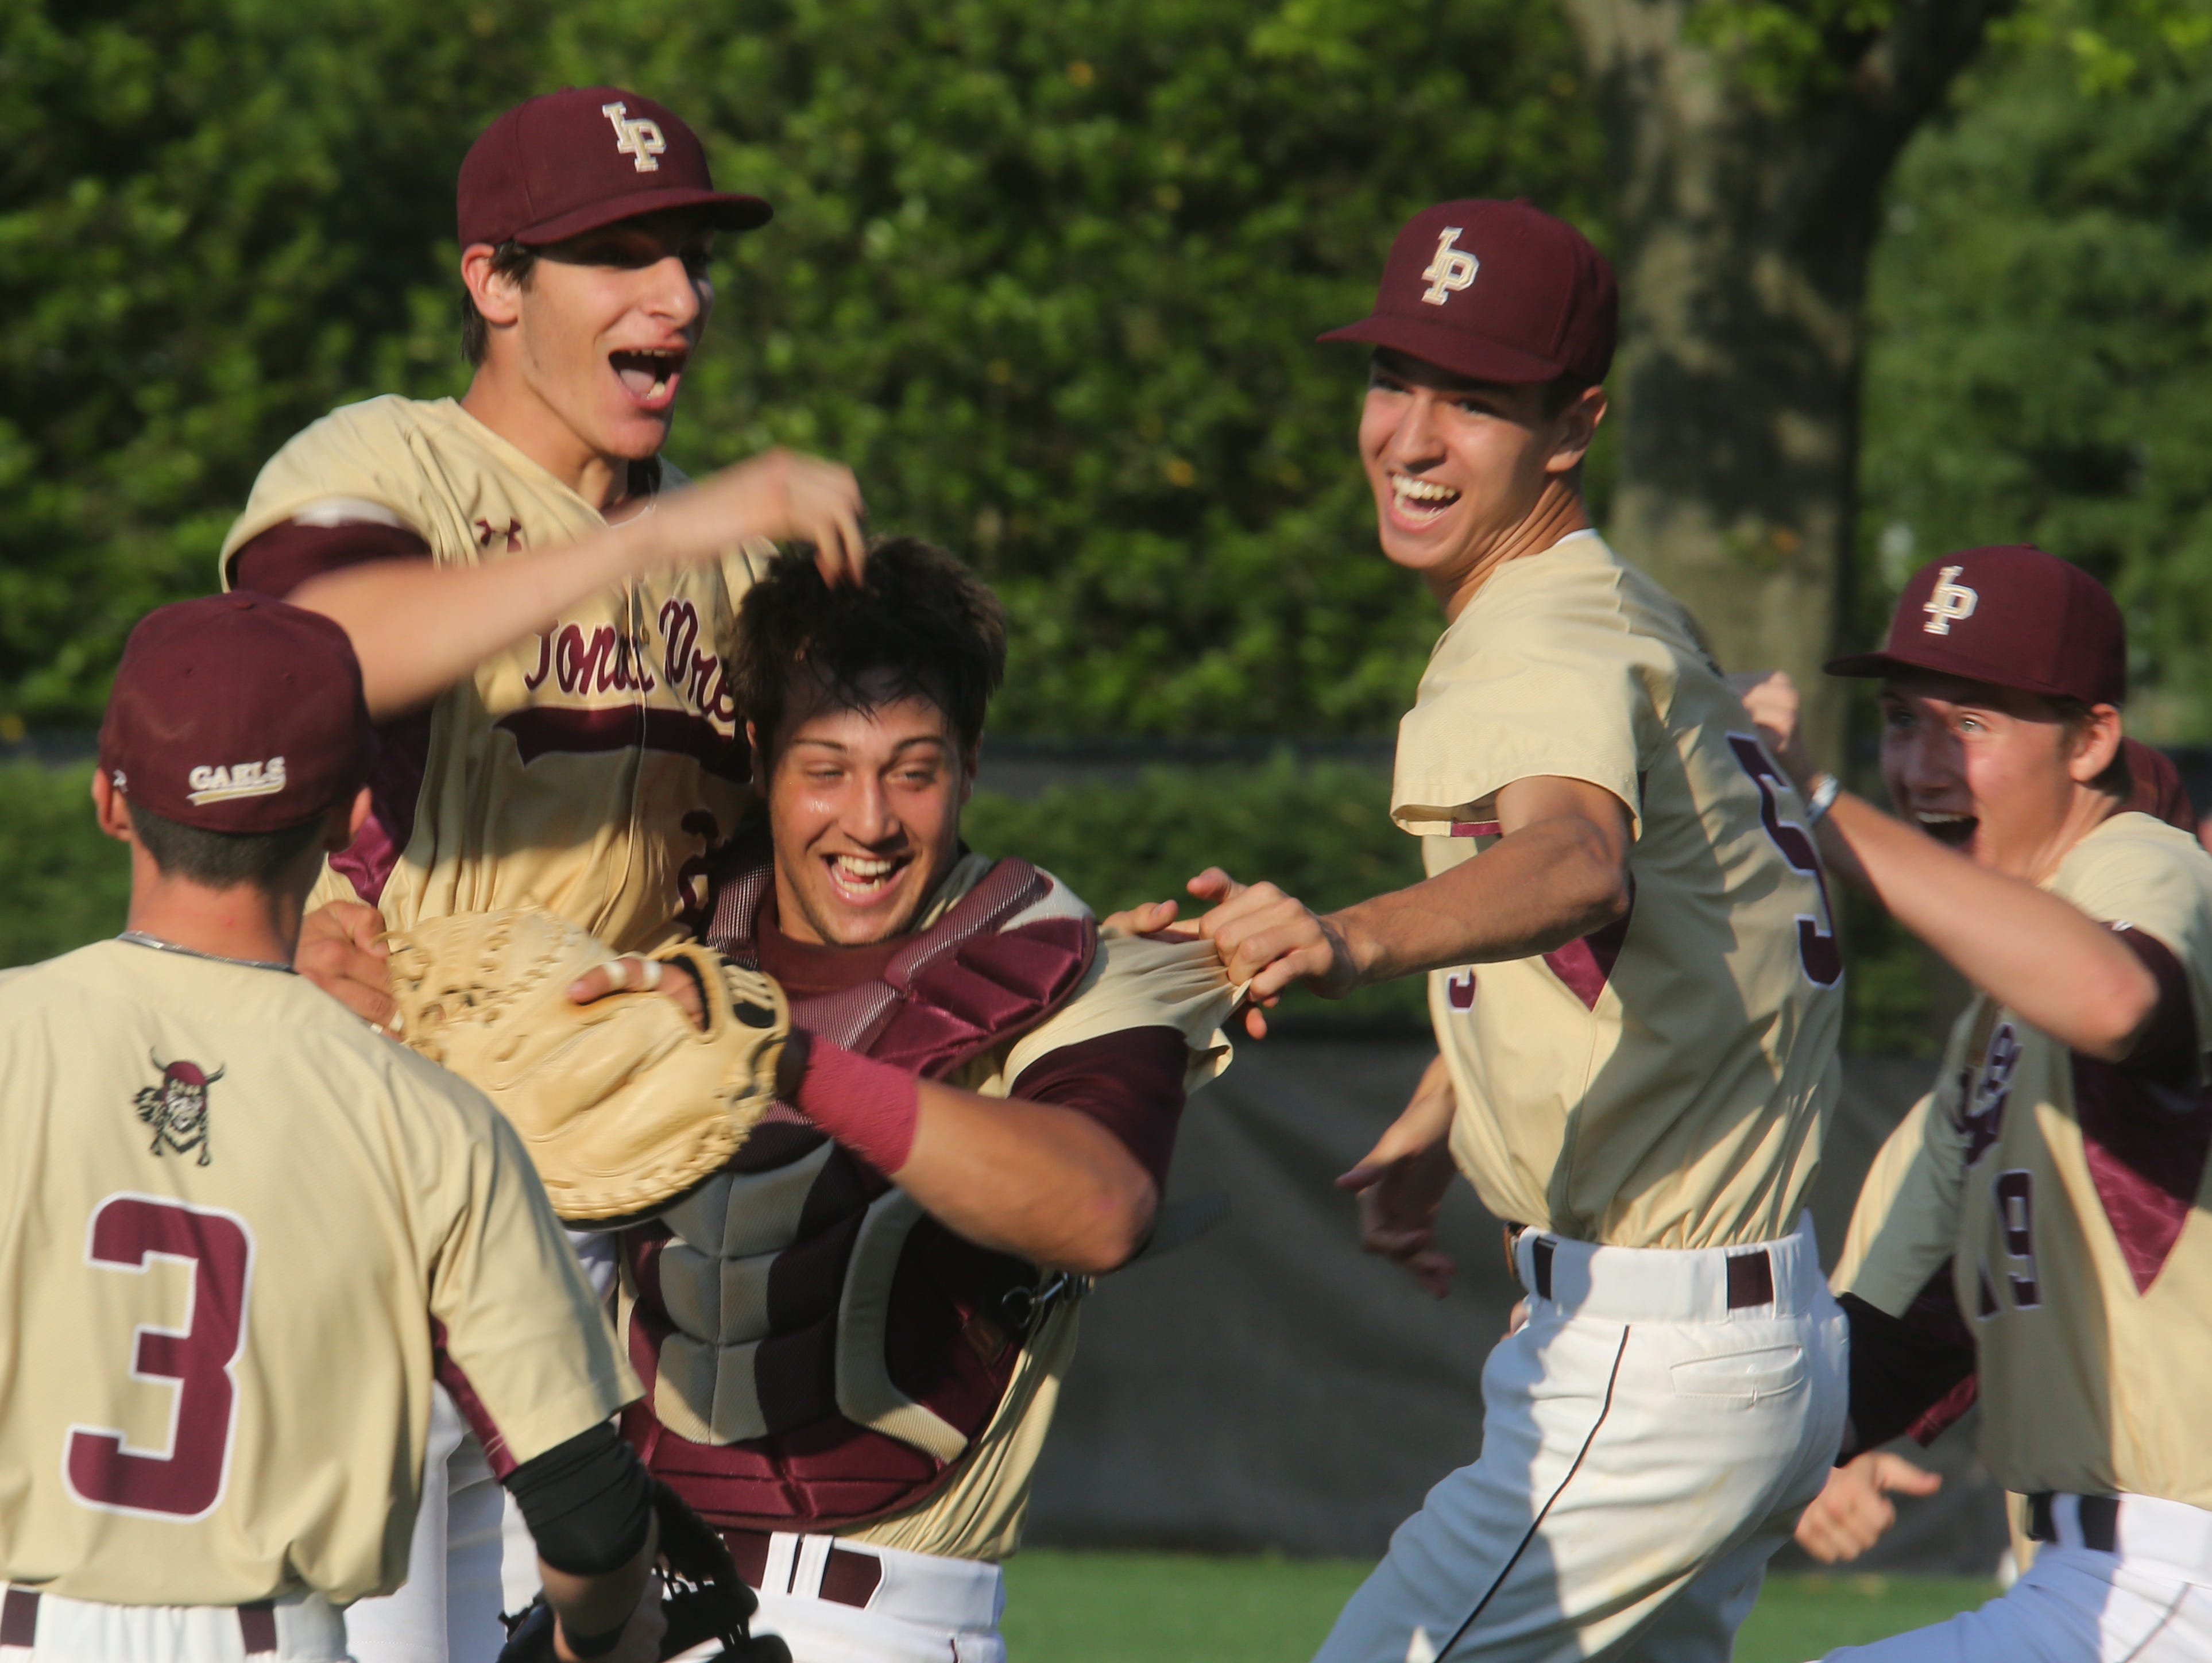 Iona Prep celebrates their 4-0 win over Xaverian during CHSAA baseball playoffs at Fordham University in Bronx on June 1, 2016.